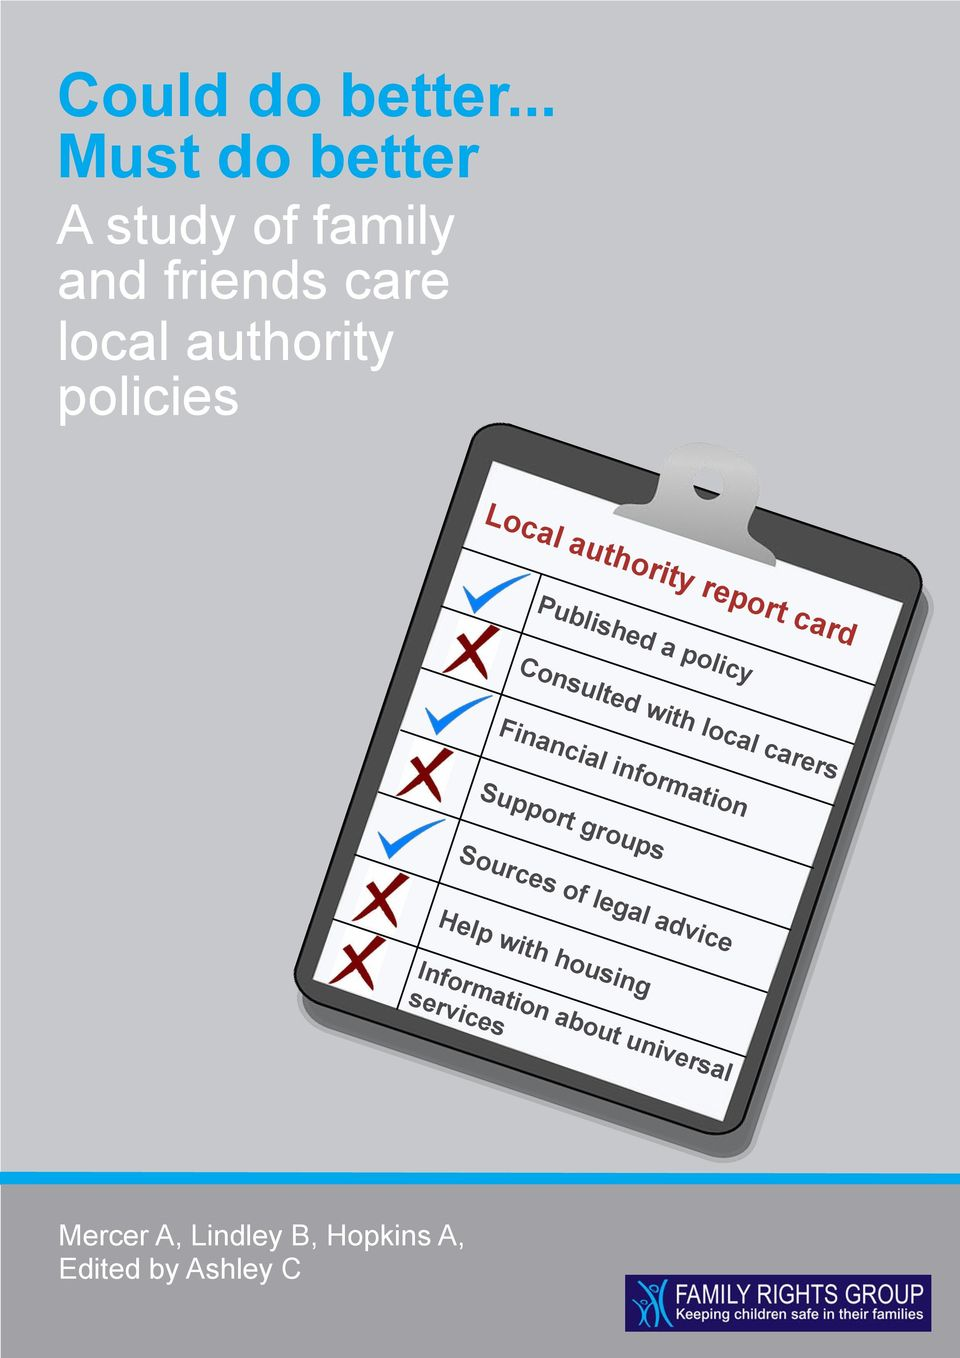 authority report card Published a policy Consulted with local carers Financial